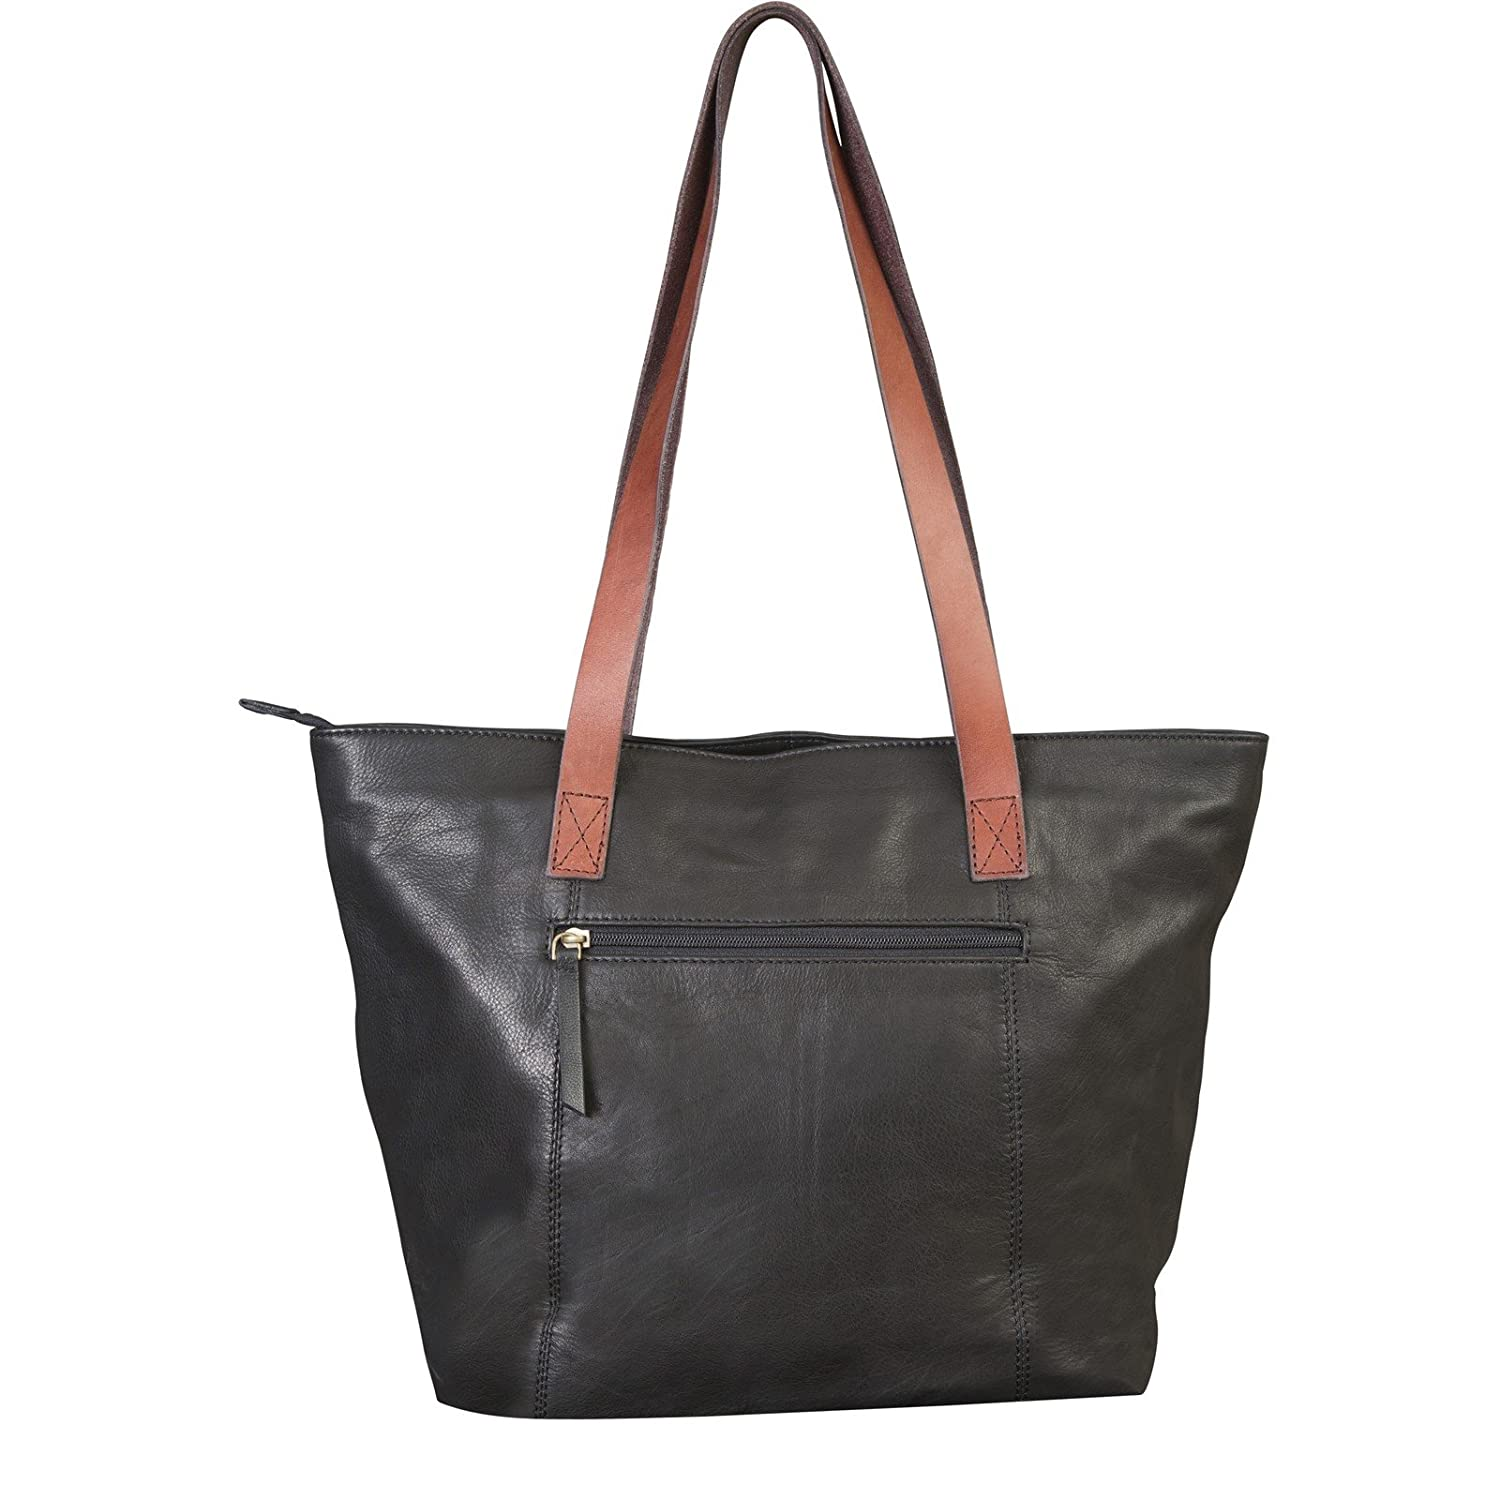 Canyon Outback 17-Inch Harper Canyon Leather Tote, Black, One Size ... 86bfc19ecf